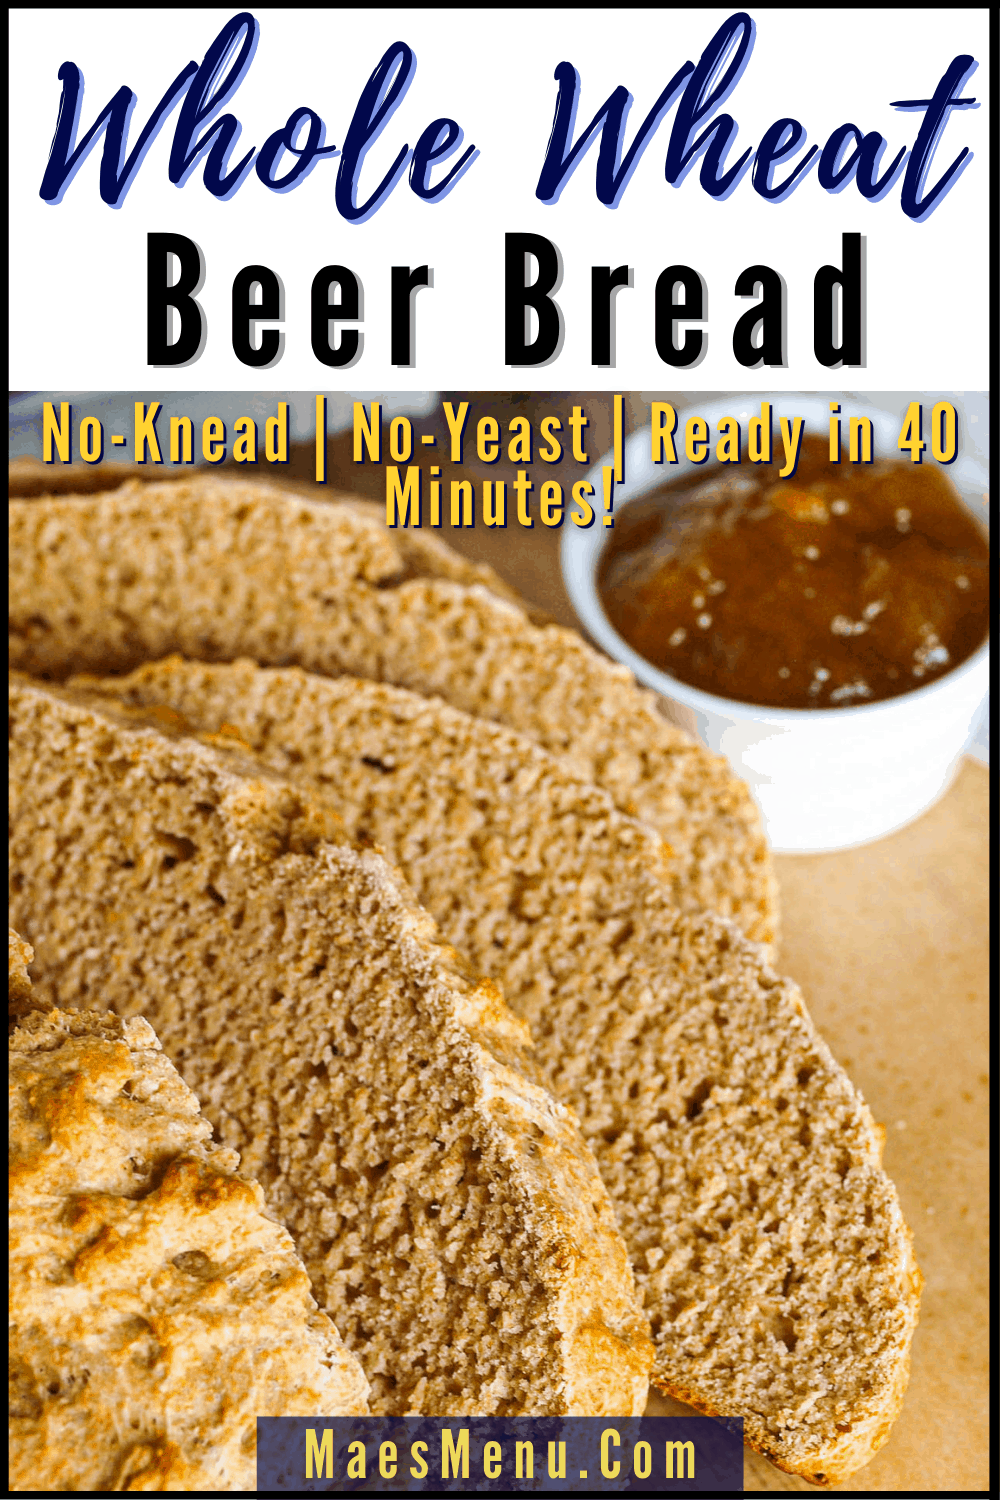 A pinterest pin for whole wheat beer bread with an angled shot of a sliced loaf of whole wheat beer bread on a sheet of parchment paper